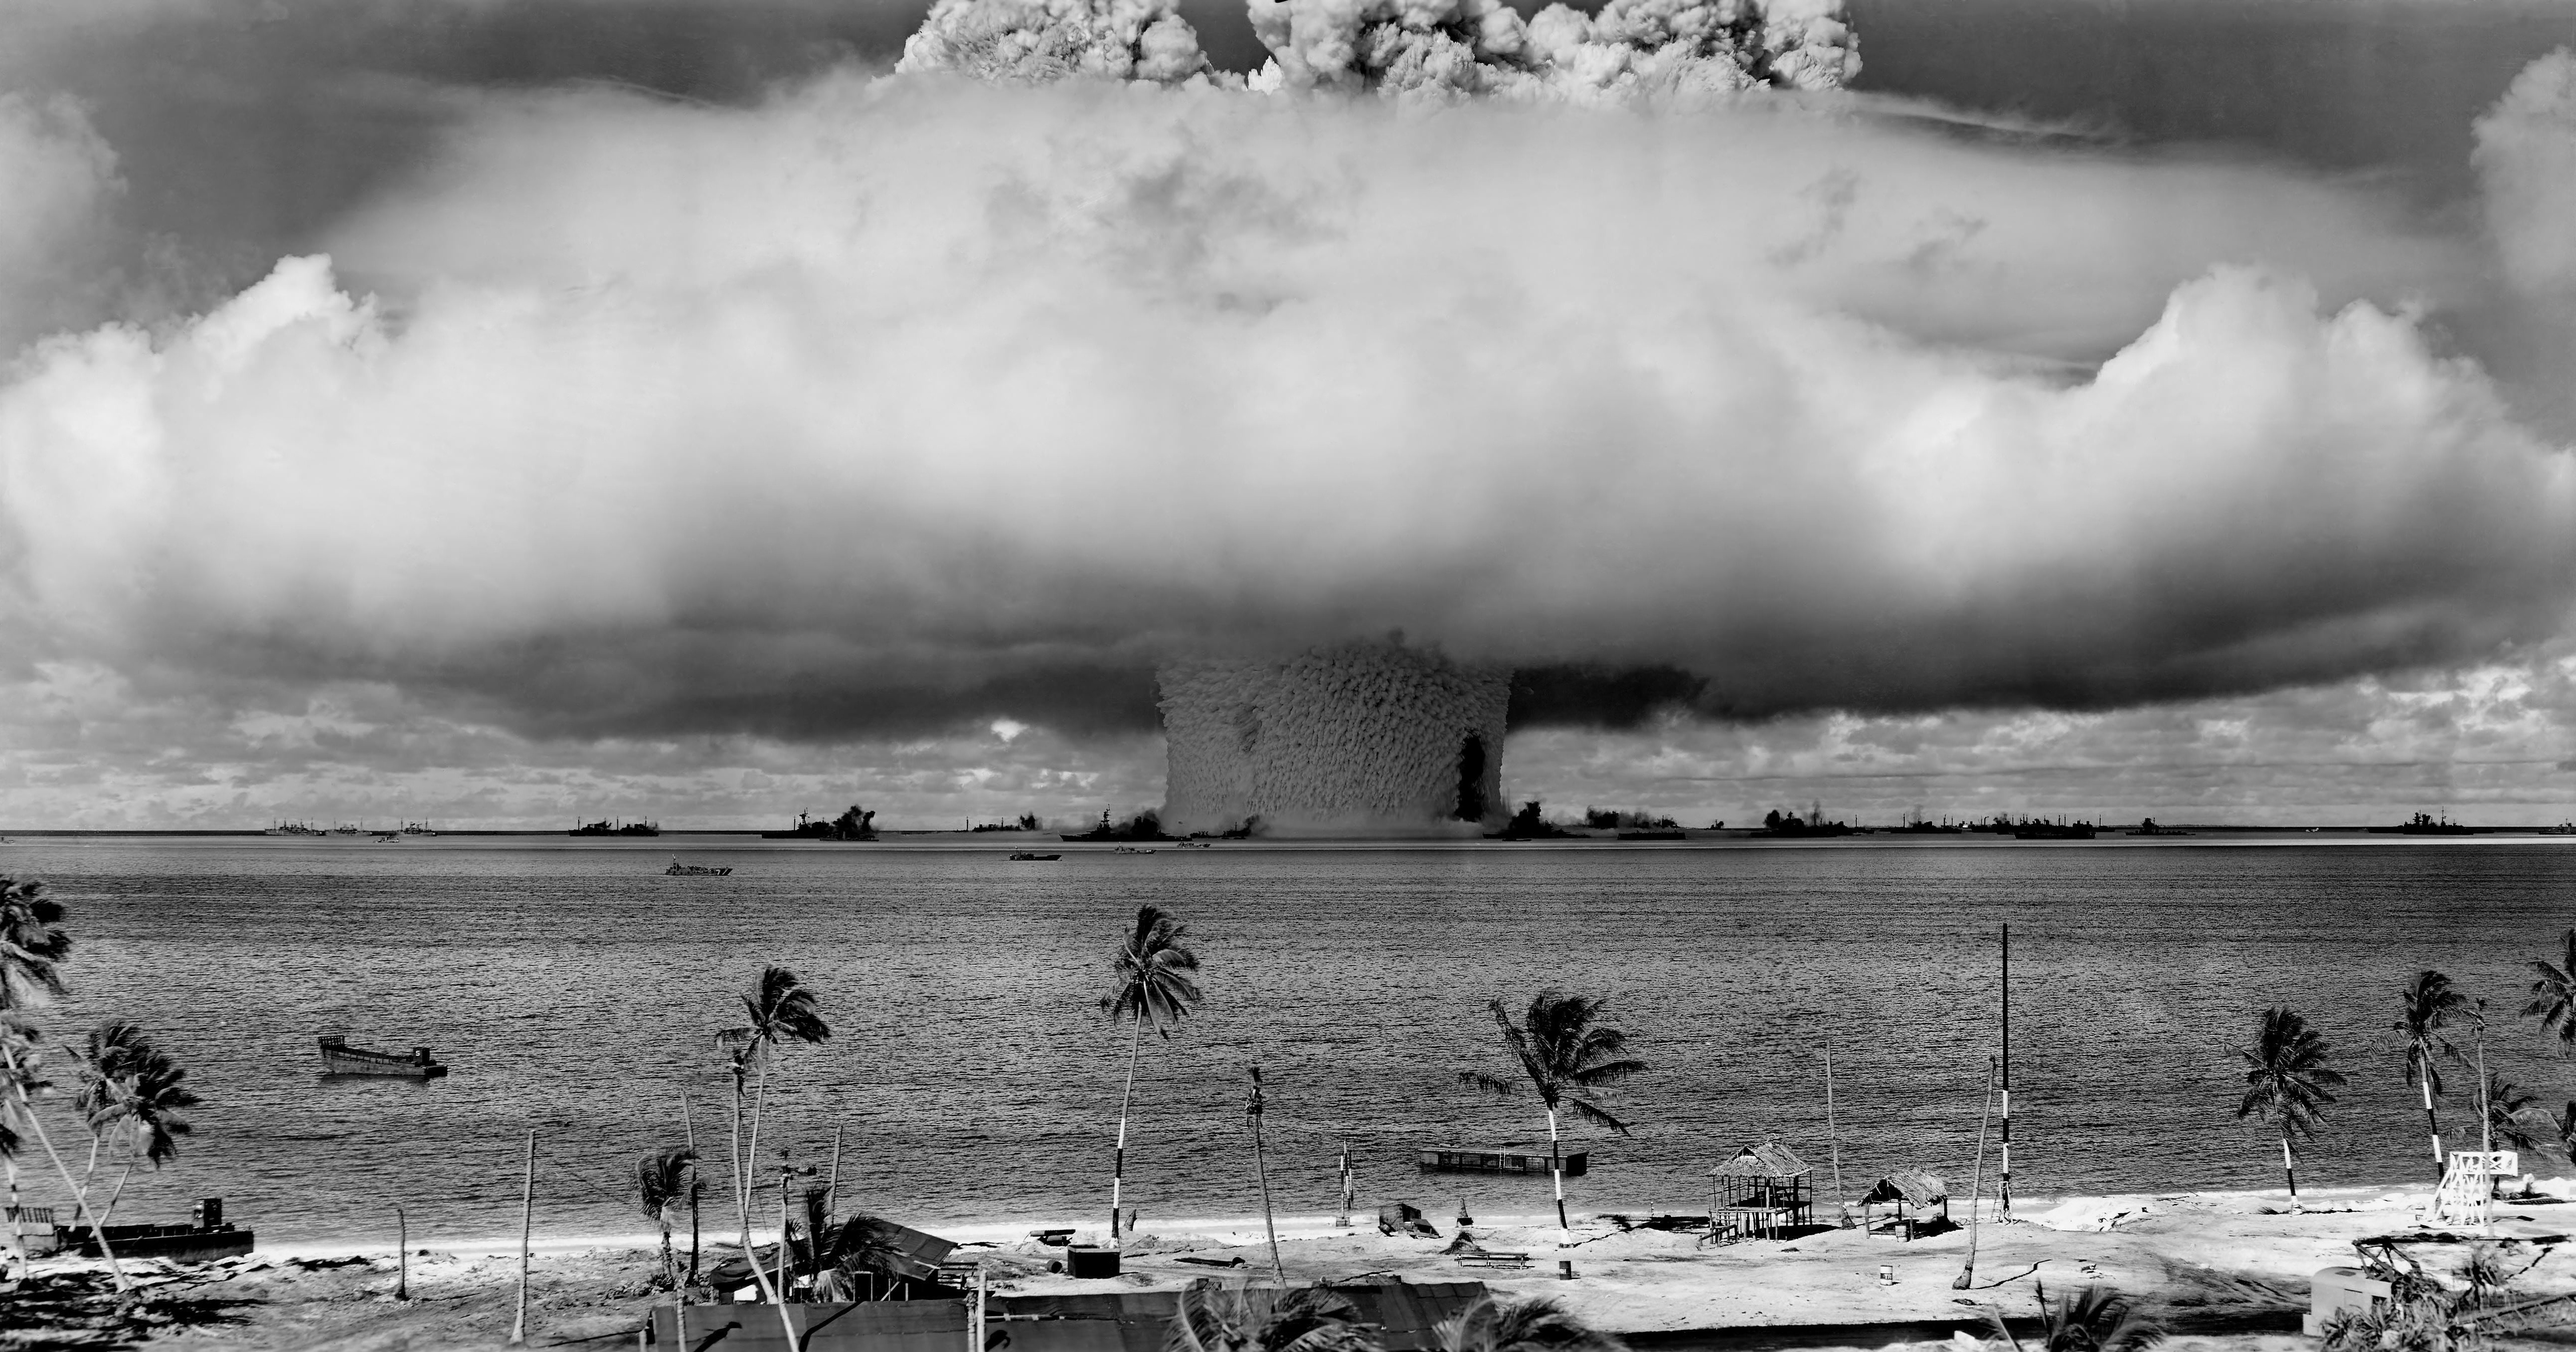 grayscale-photo-of-explosion-on-the-beach-73909-1